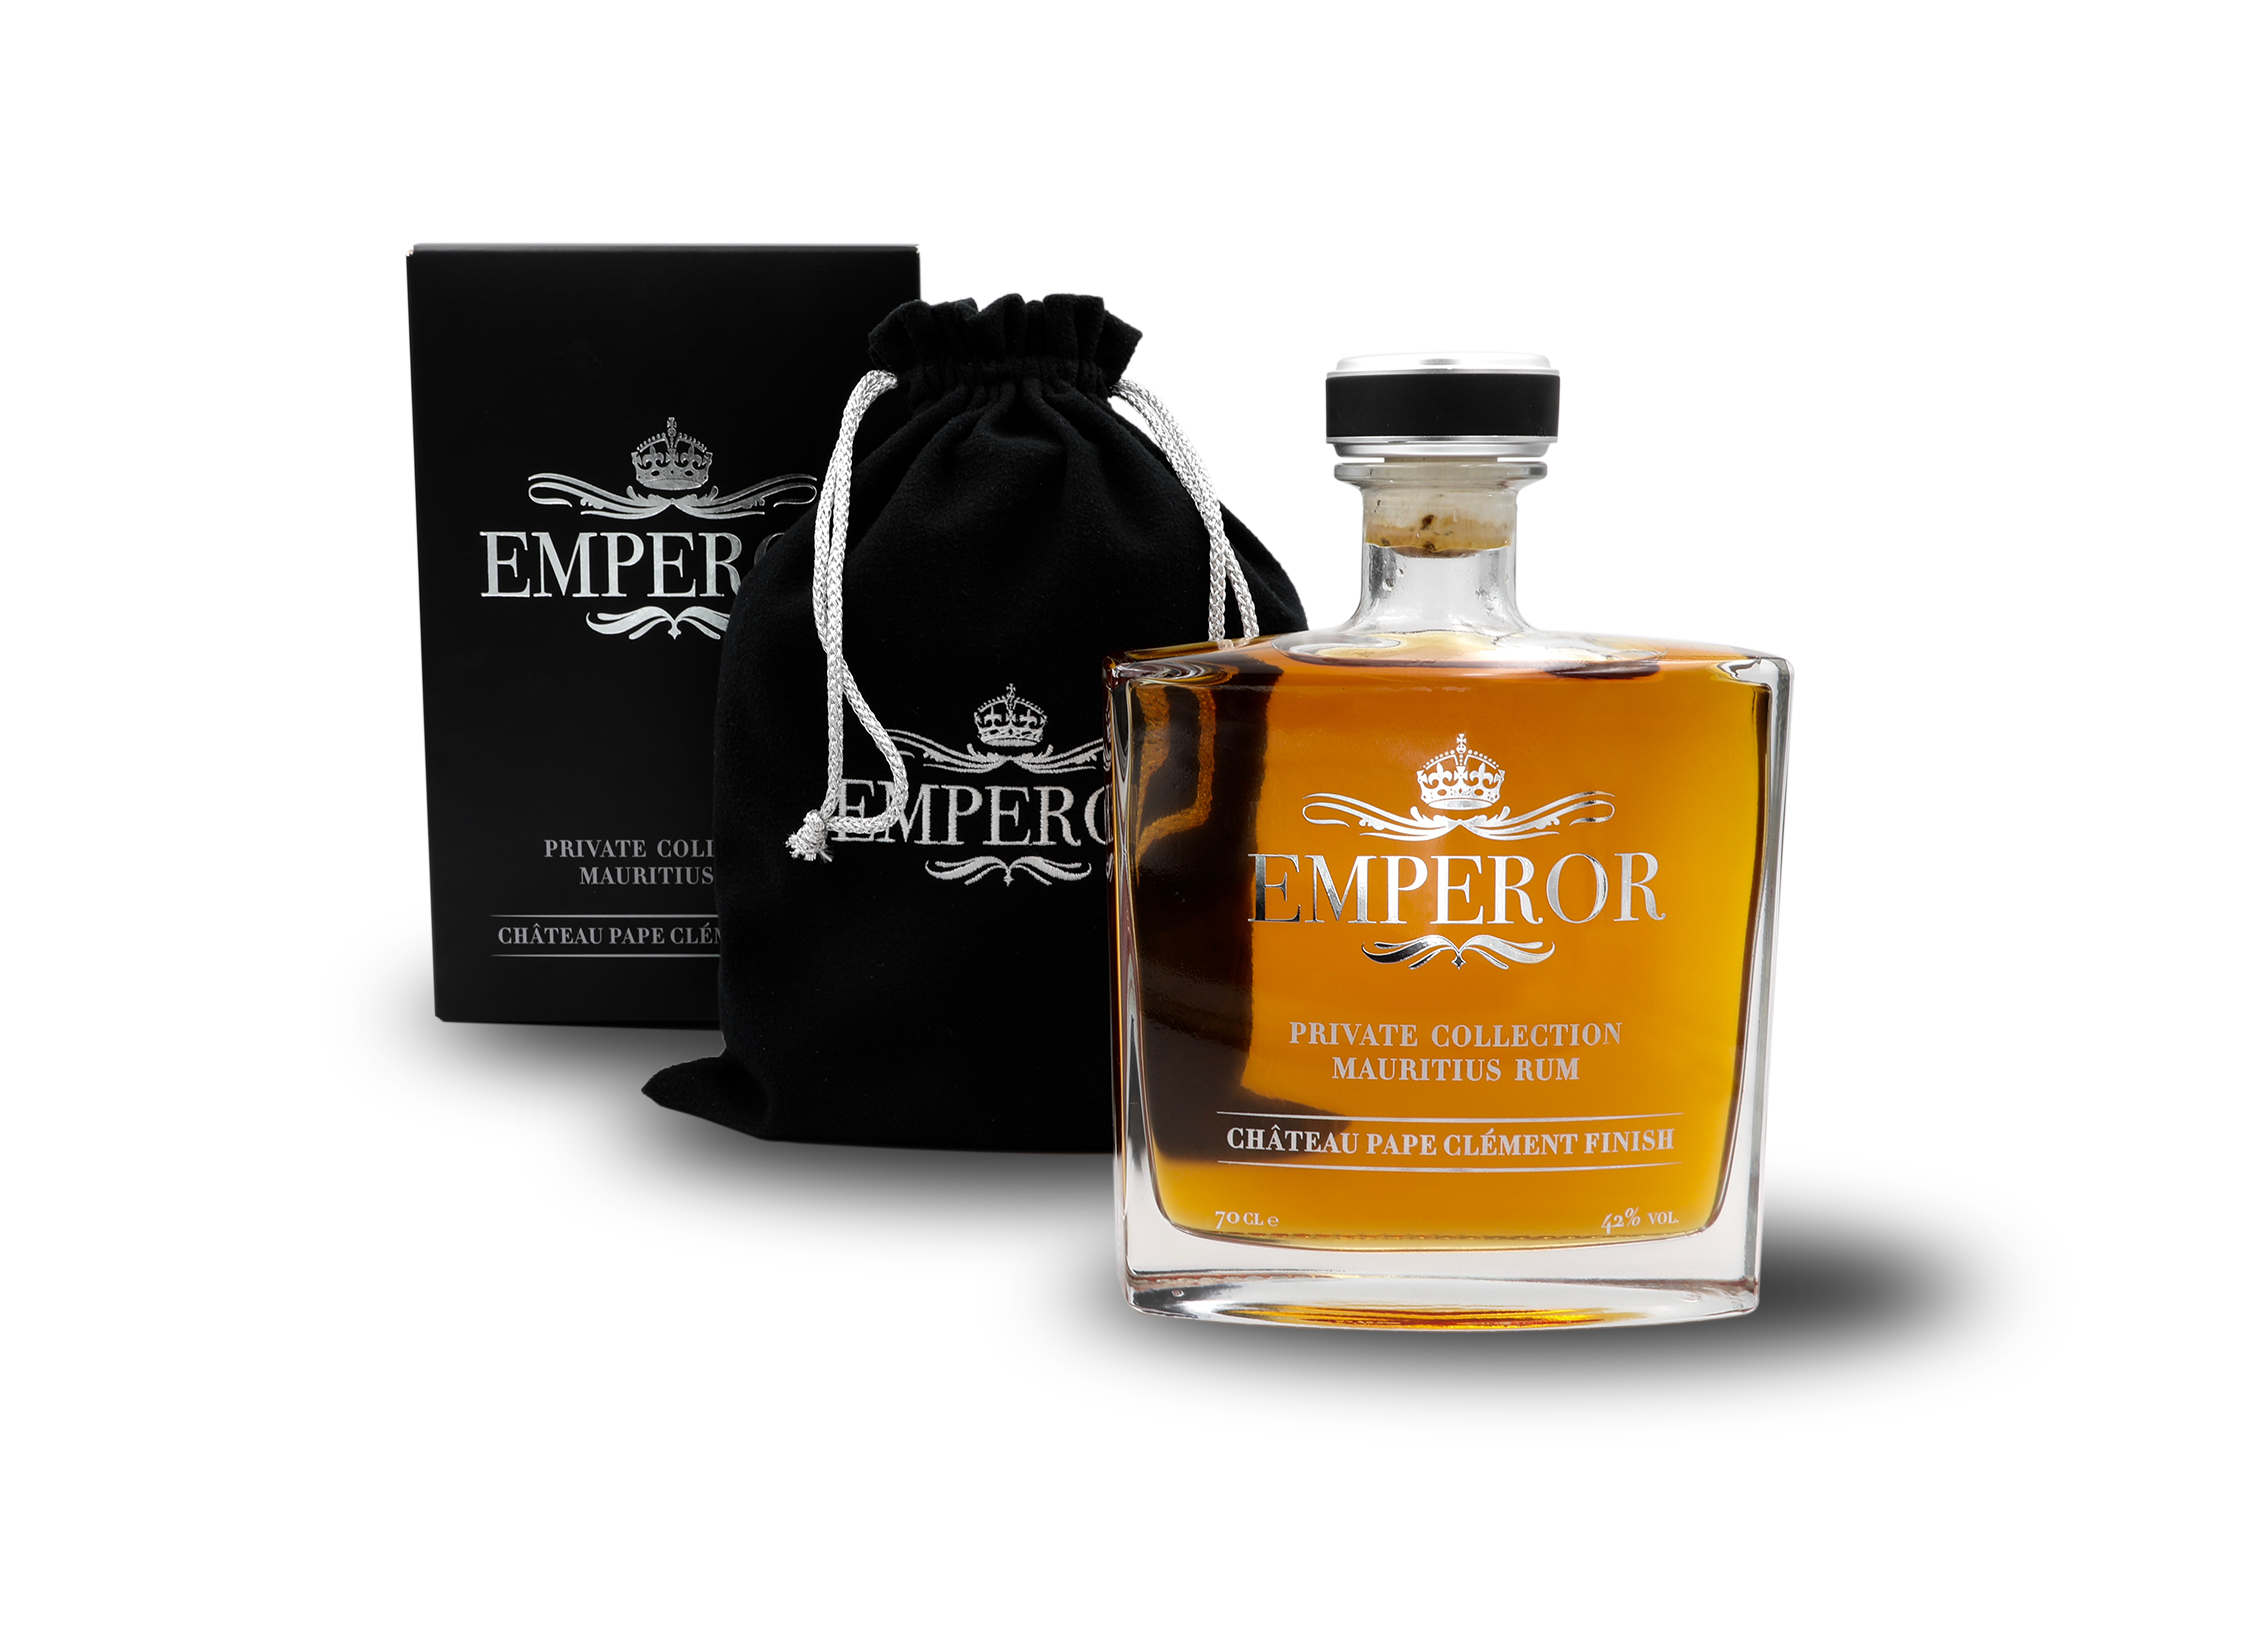 Emperor_Private_Collection_Packshot_bottle_box.png